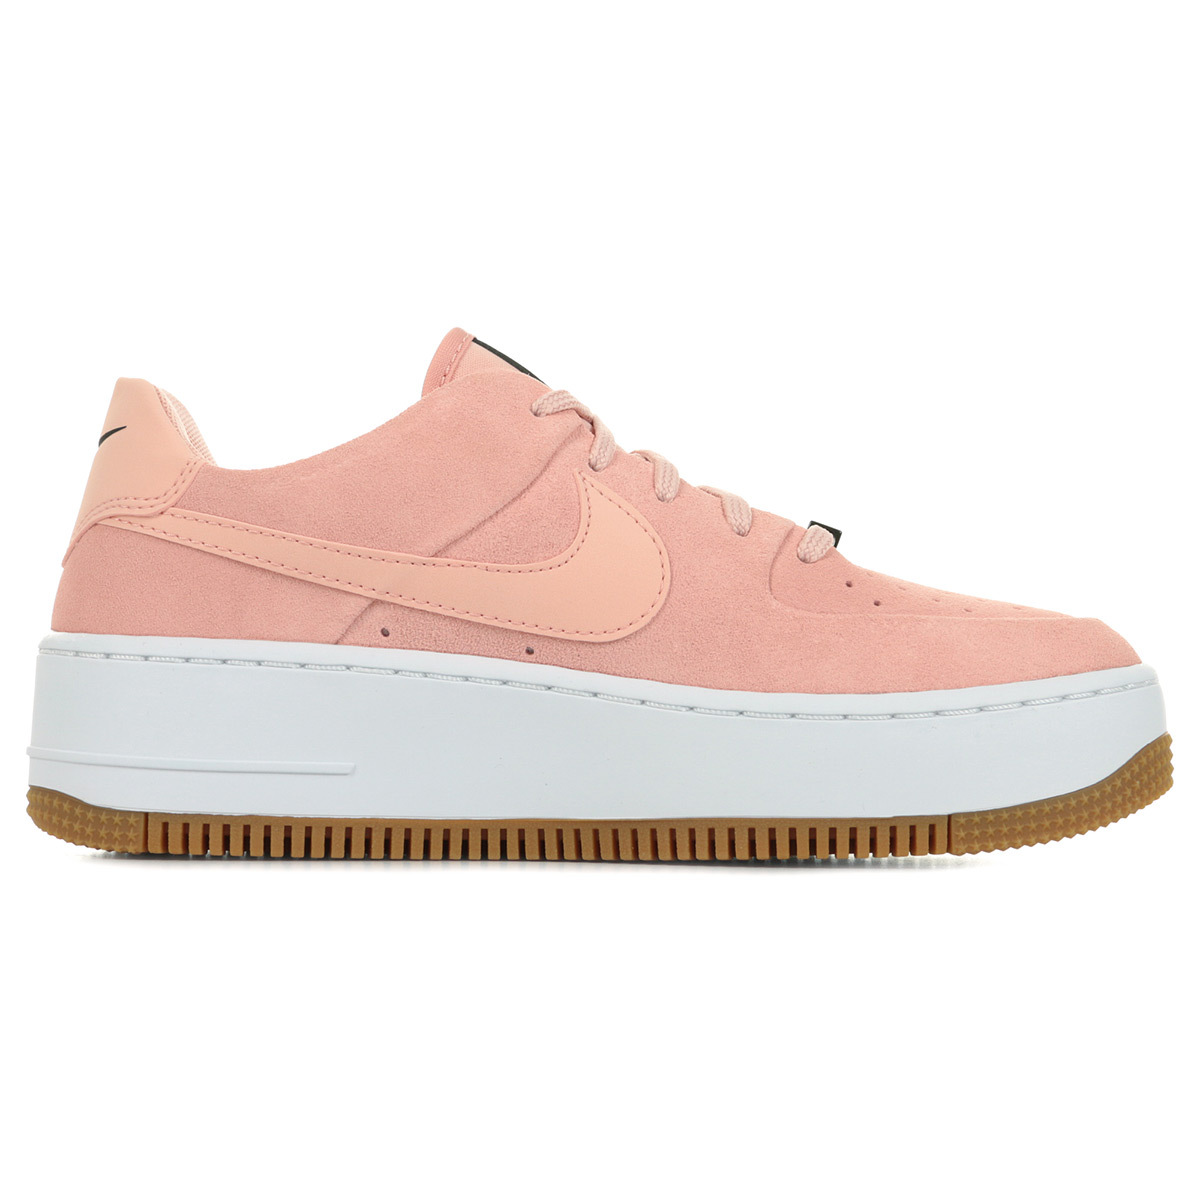 Nike Air Force 1 Sage Low Wn's AR5339603, Baskets mode femme